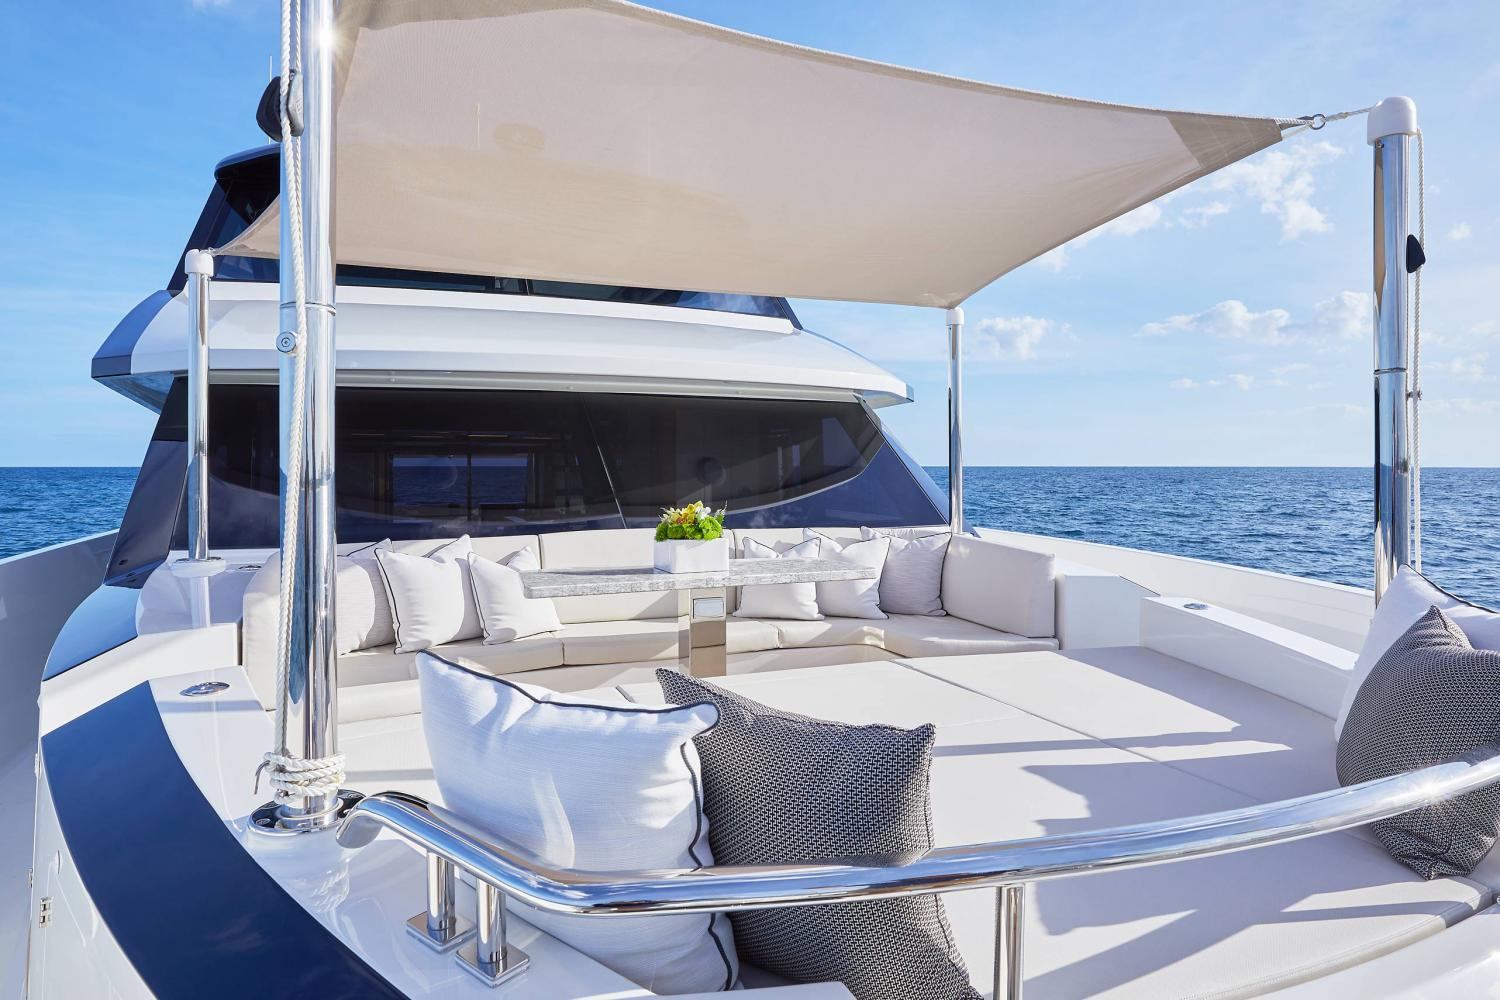 Image 3 for Adaptable Ocean Alexander 26R Meets Every Boating Need